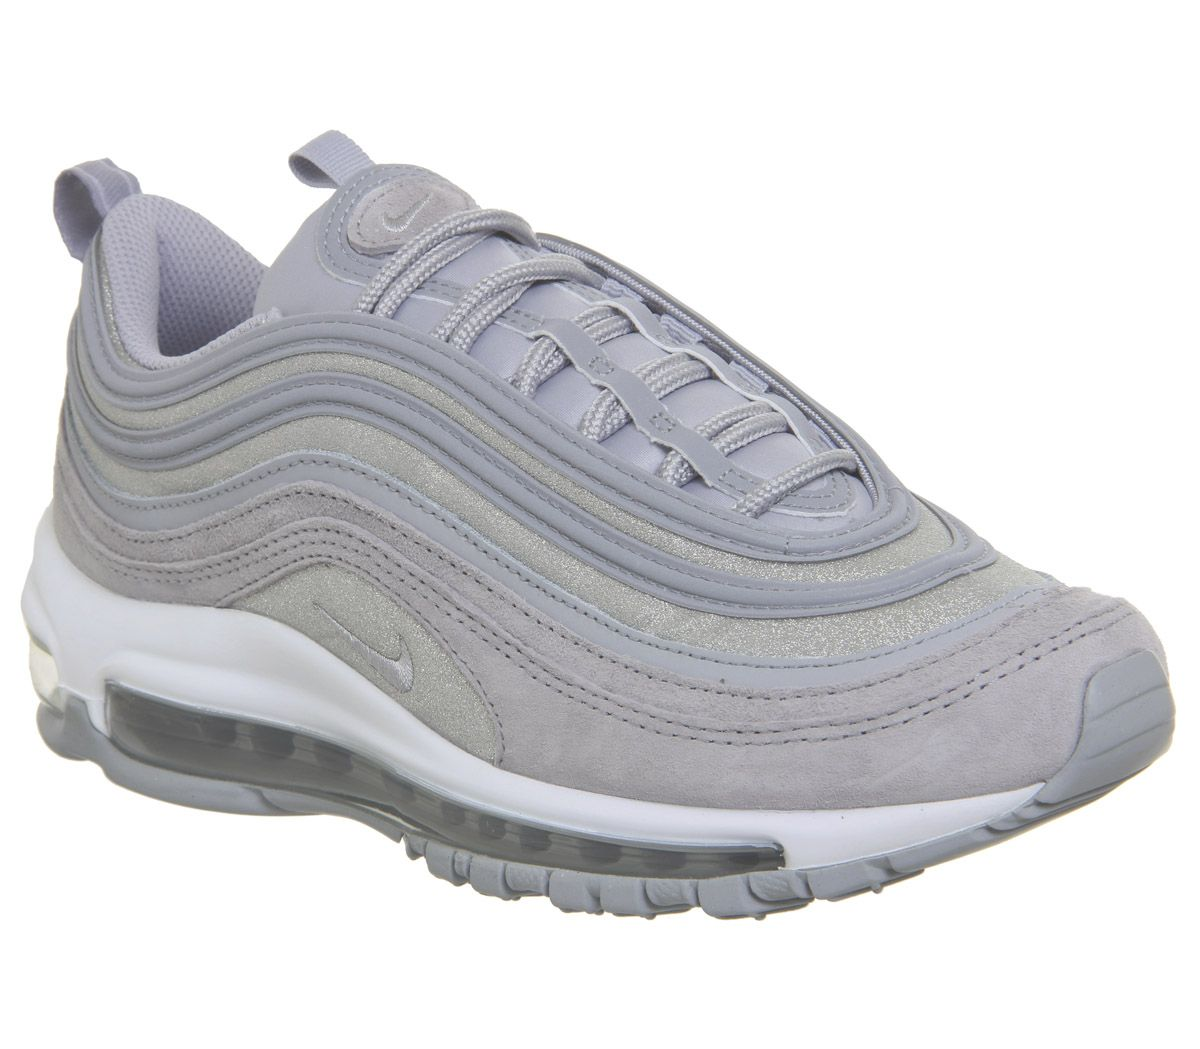 best website 4ebfd 23969 Air Max 97 Trainers